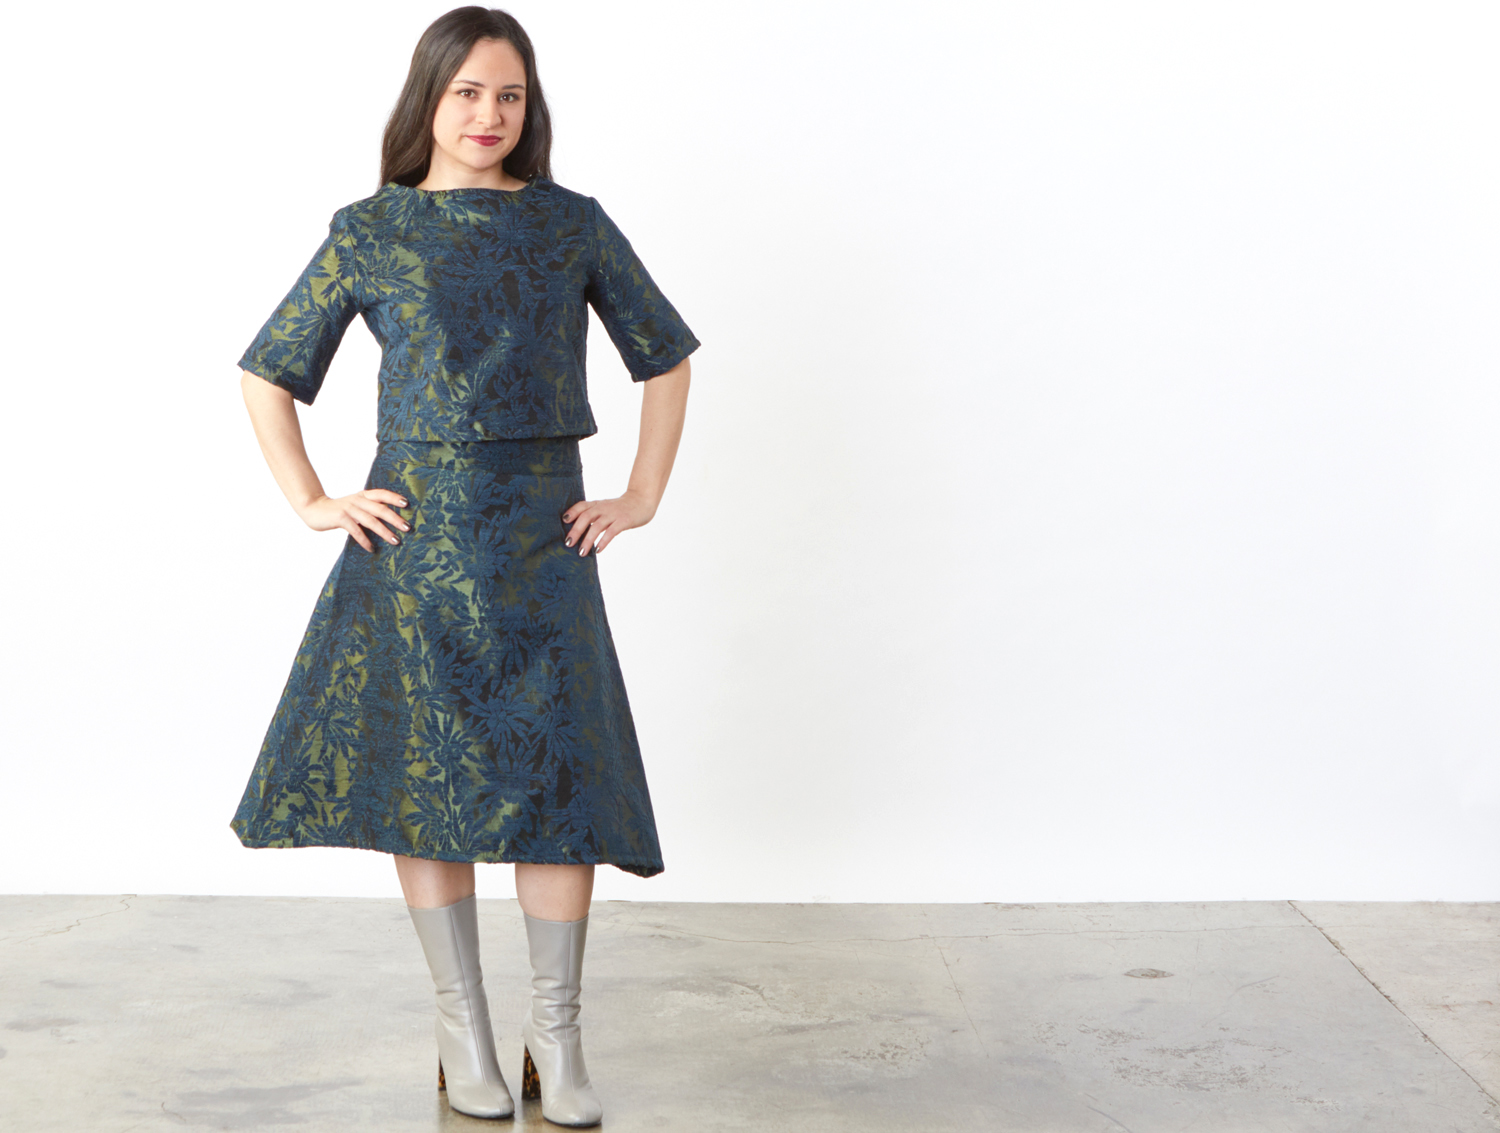 Sigi Zip Shirt, Sean Zip Skirt in Green Chenille Jacquard